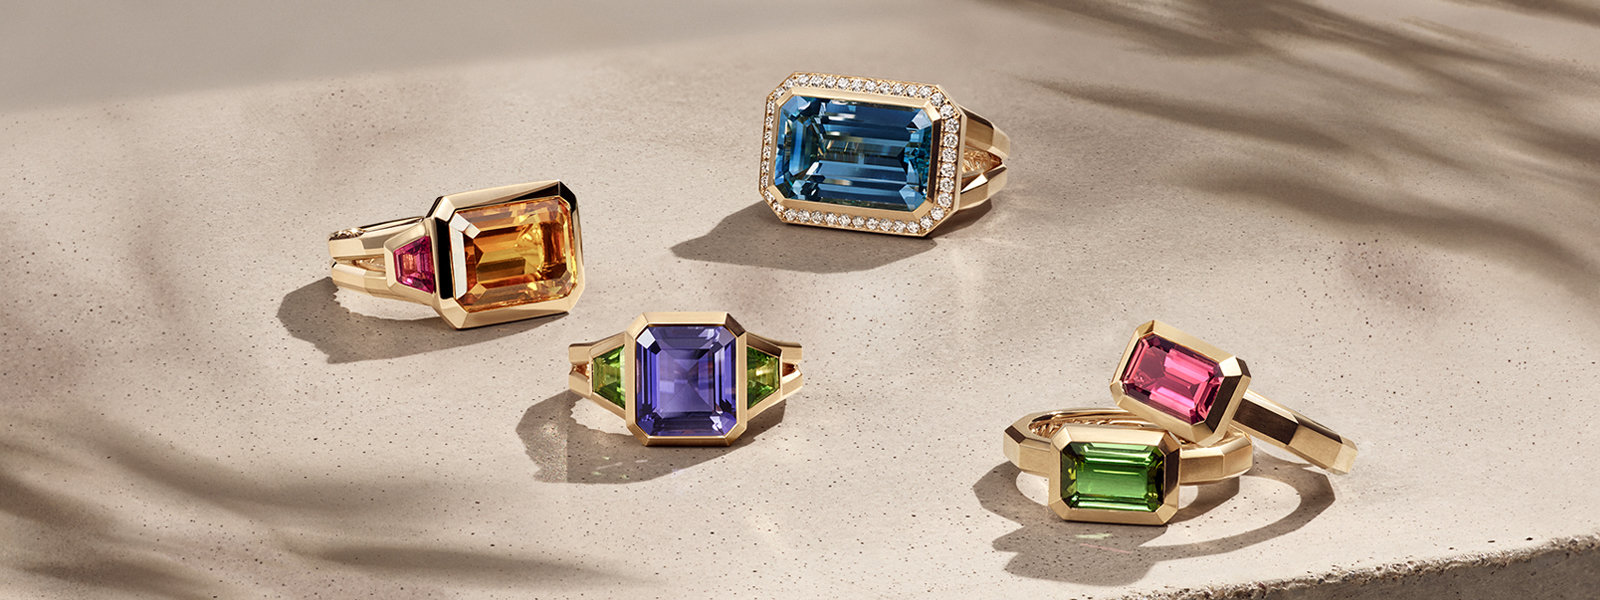 David Yurman Novella rings in 18K yellow gold with citrine and rhodalite garnet, iolite and green tourmaline, blue topaz and diamonds, or green or pink tourmaline, arranged in a group on a sandy-colored stone illuminated with the designs casting long shadows.